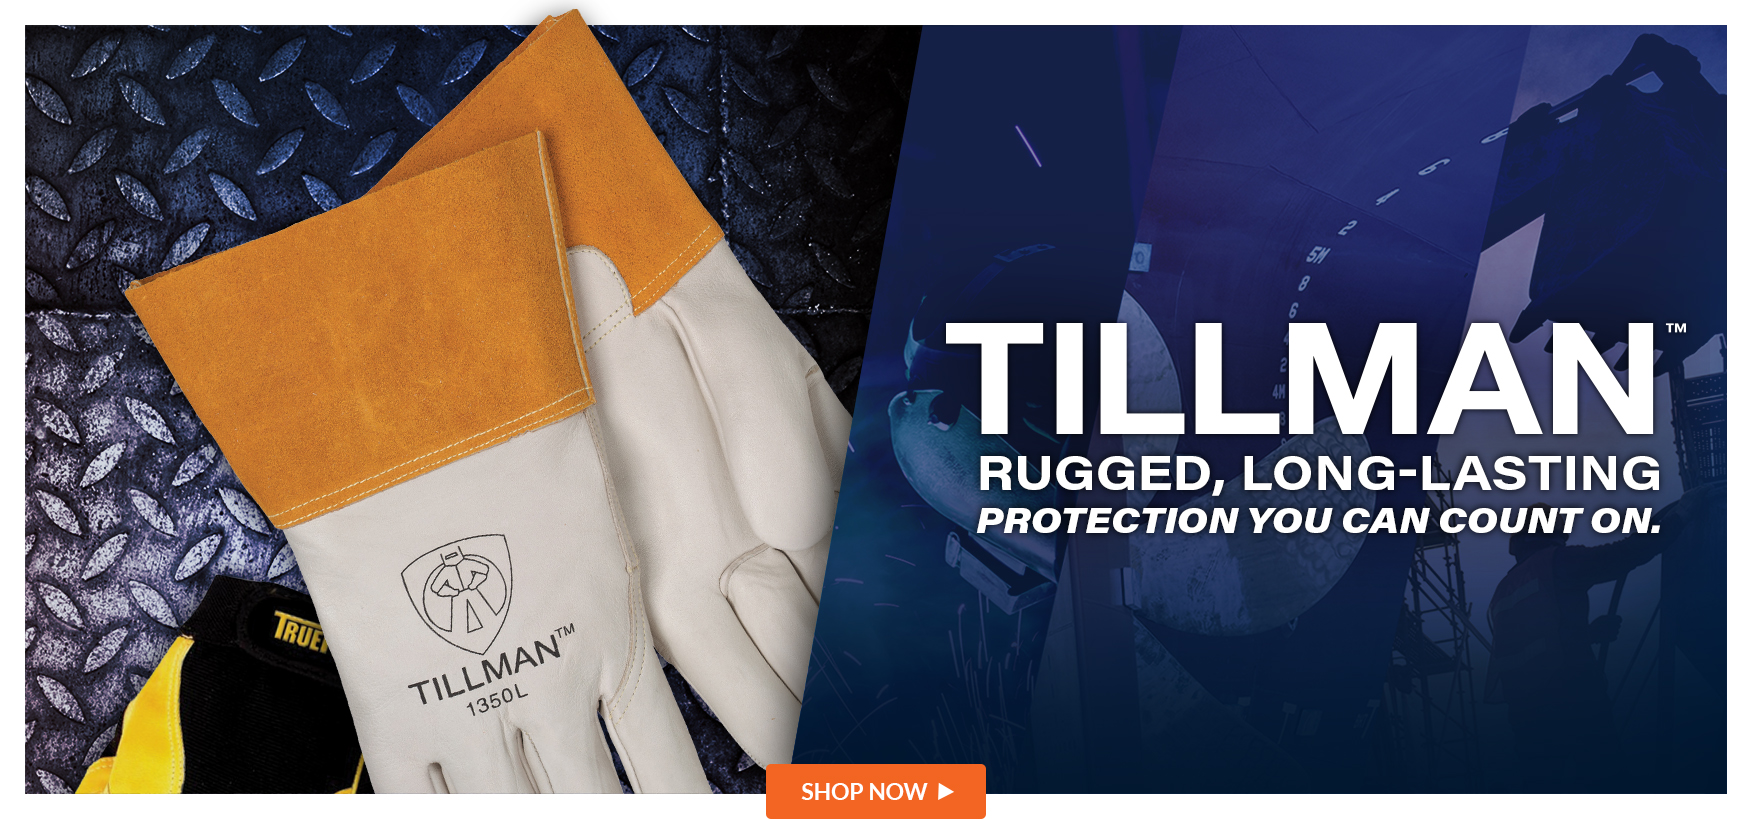 We are proud to offer Tillman Products.